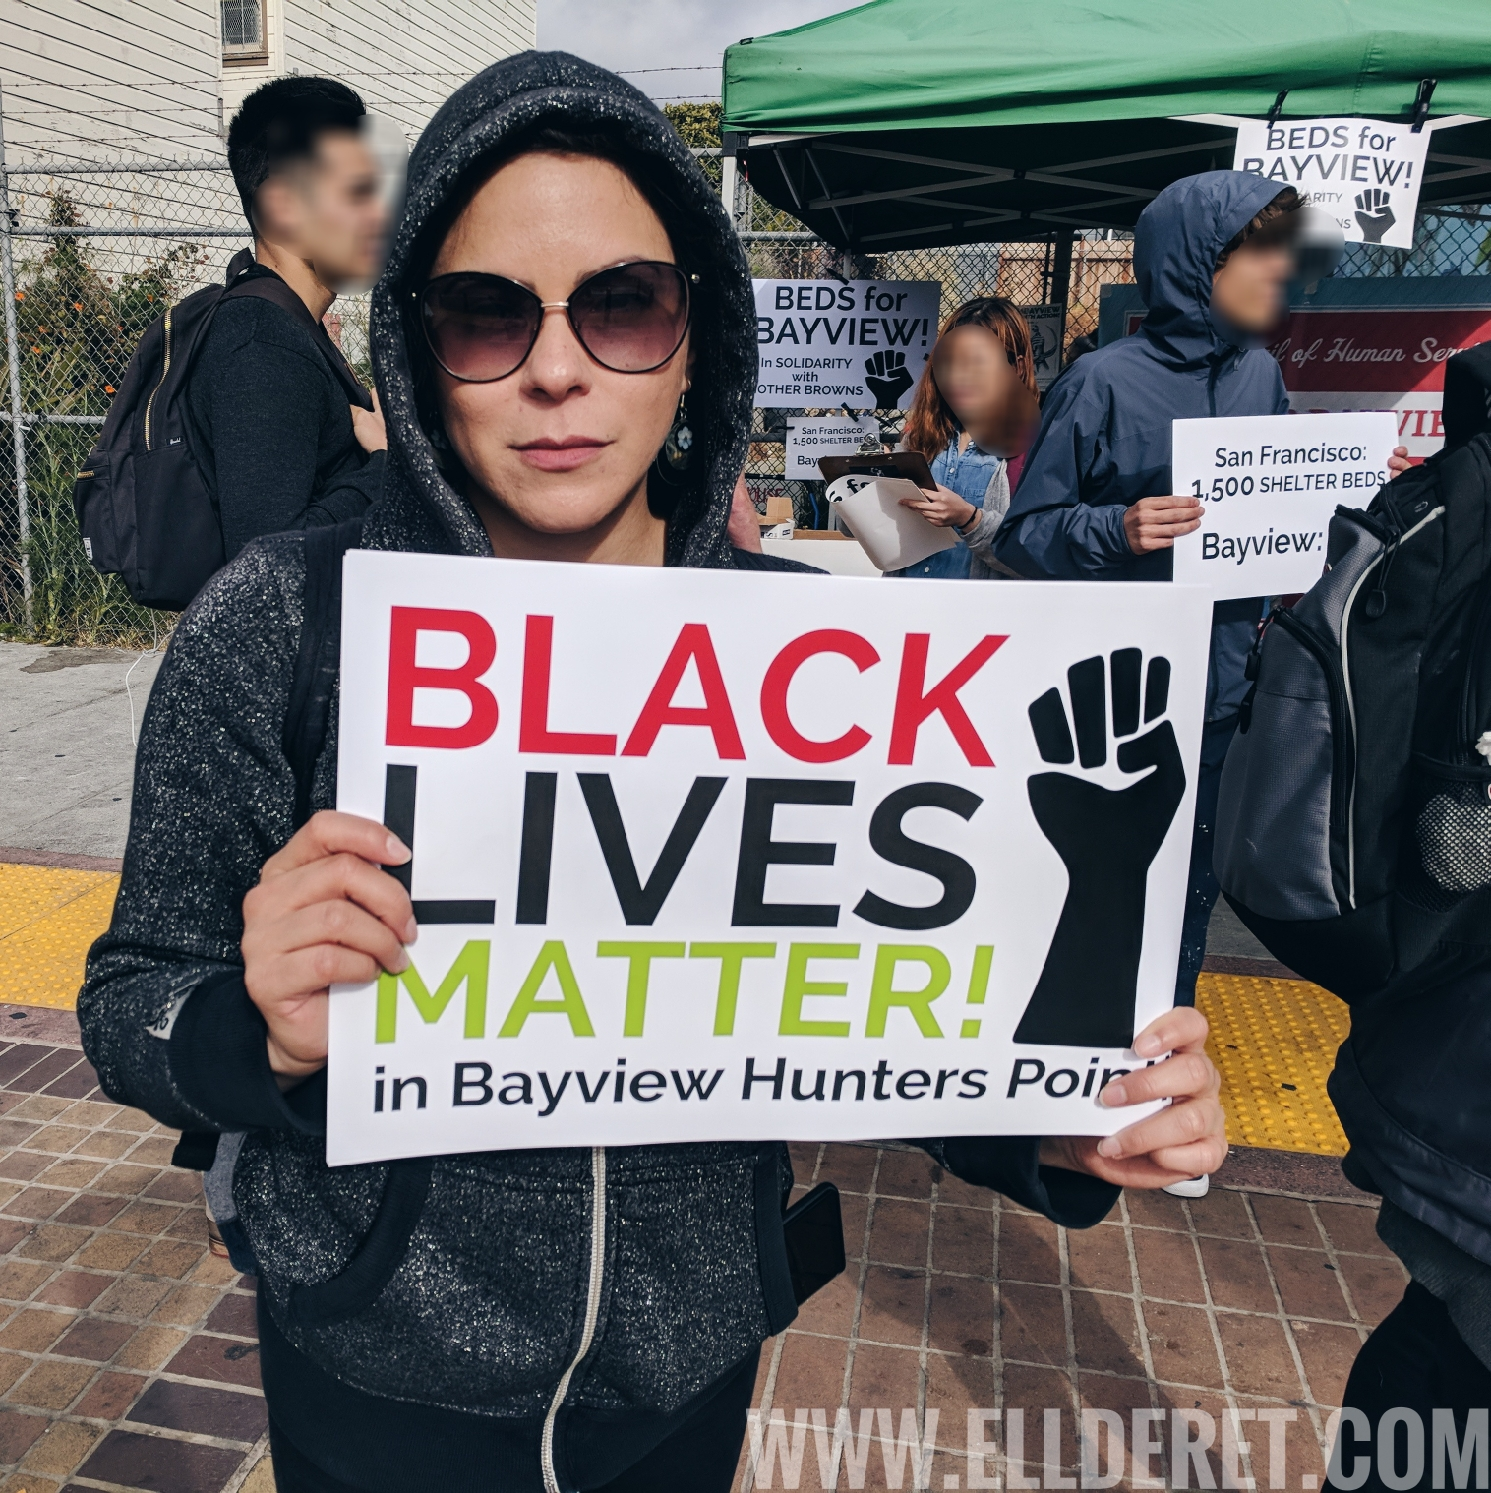 Beds For Bayview Protest